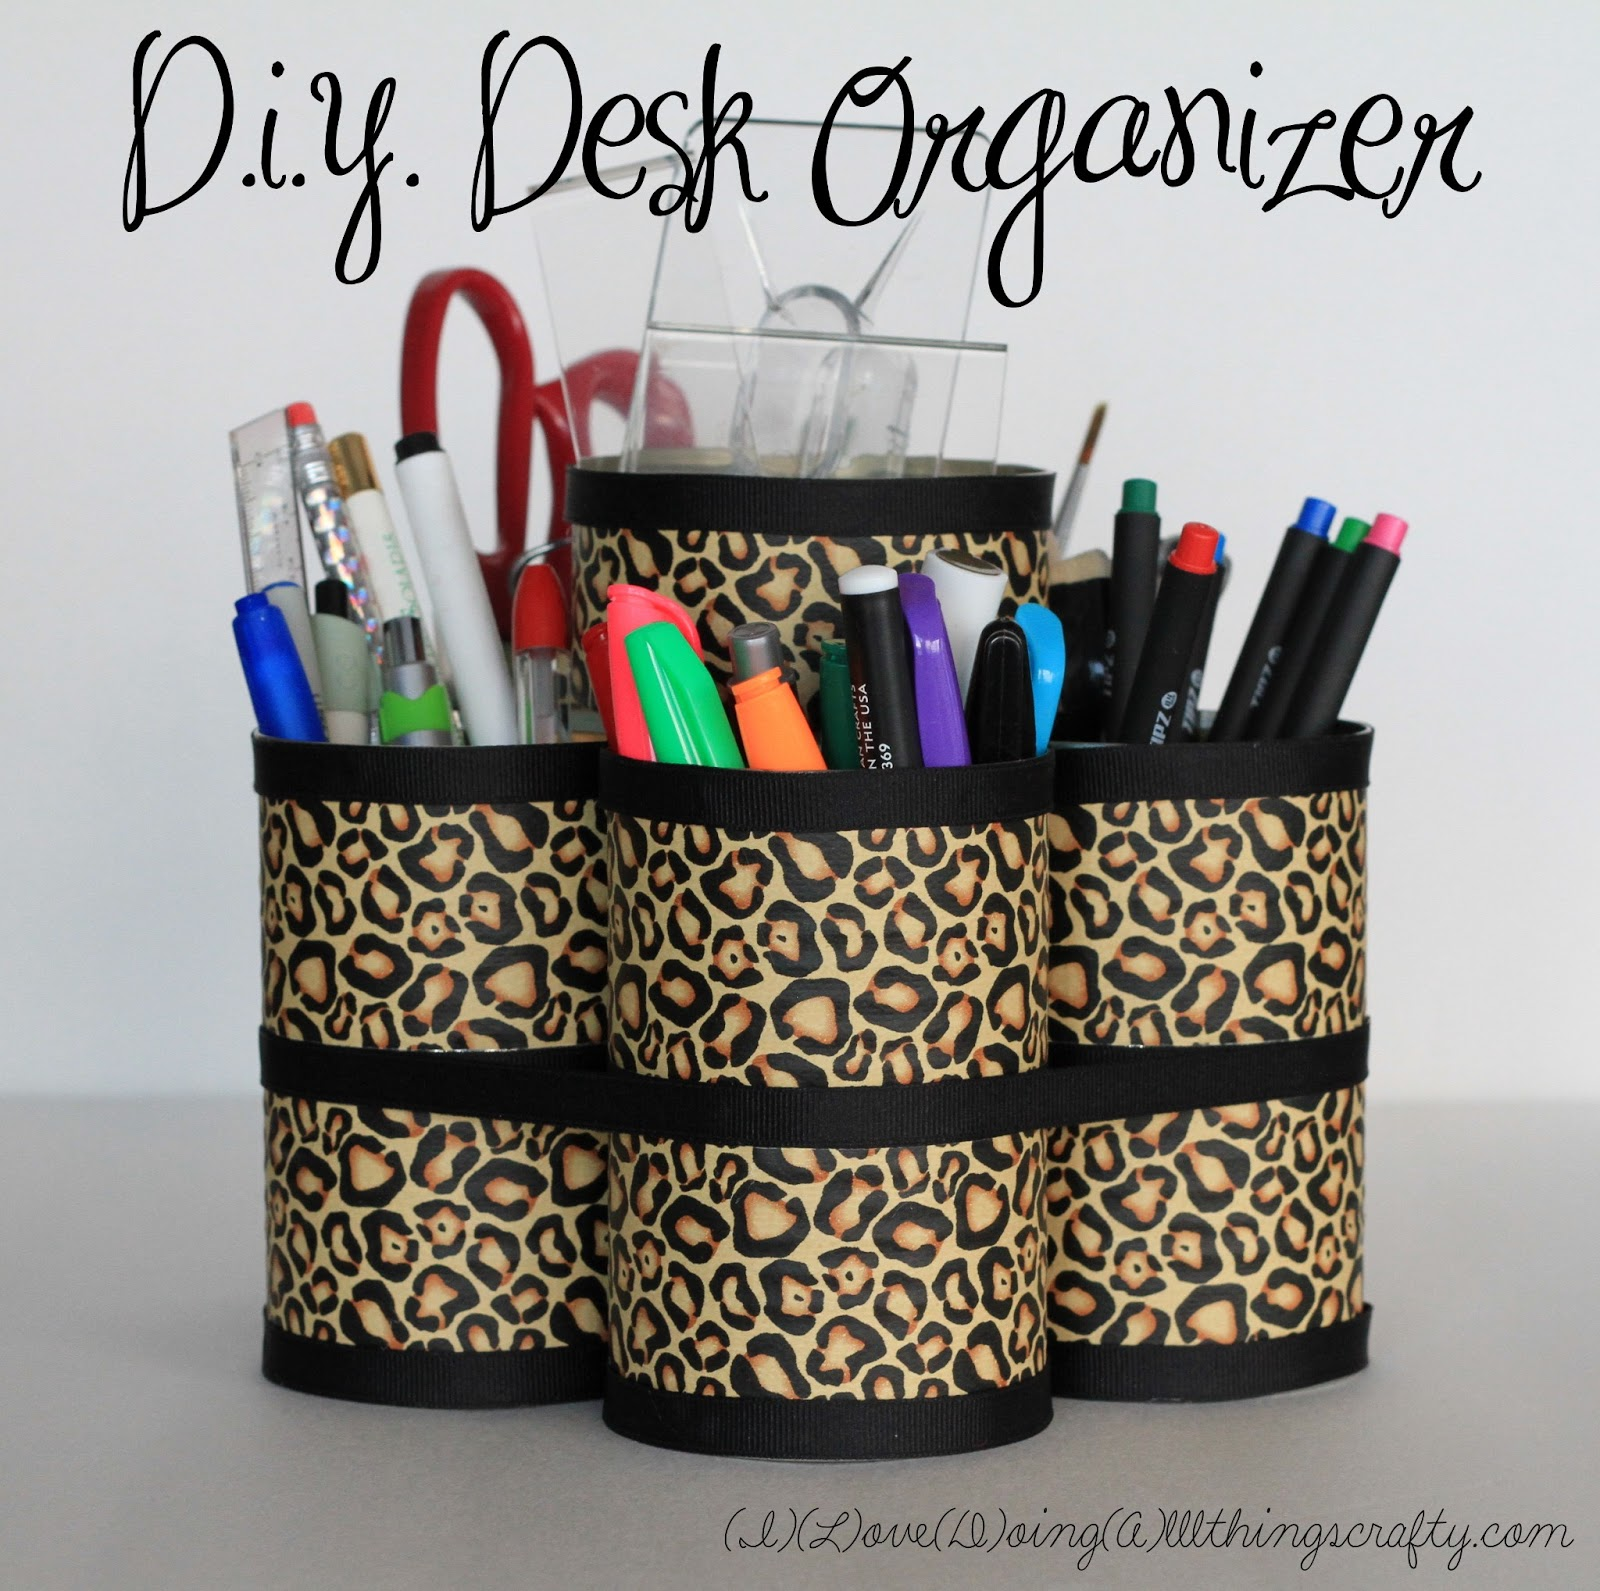 Diy Desk Organizer I Love Doing All Things Crafty Diy Desk Organizer